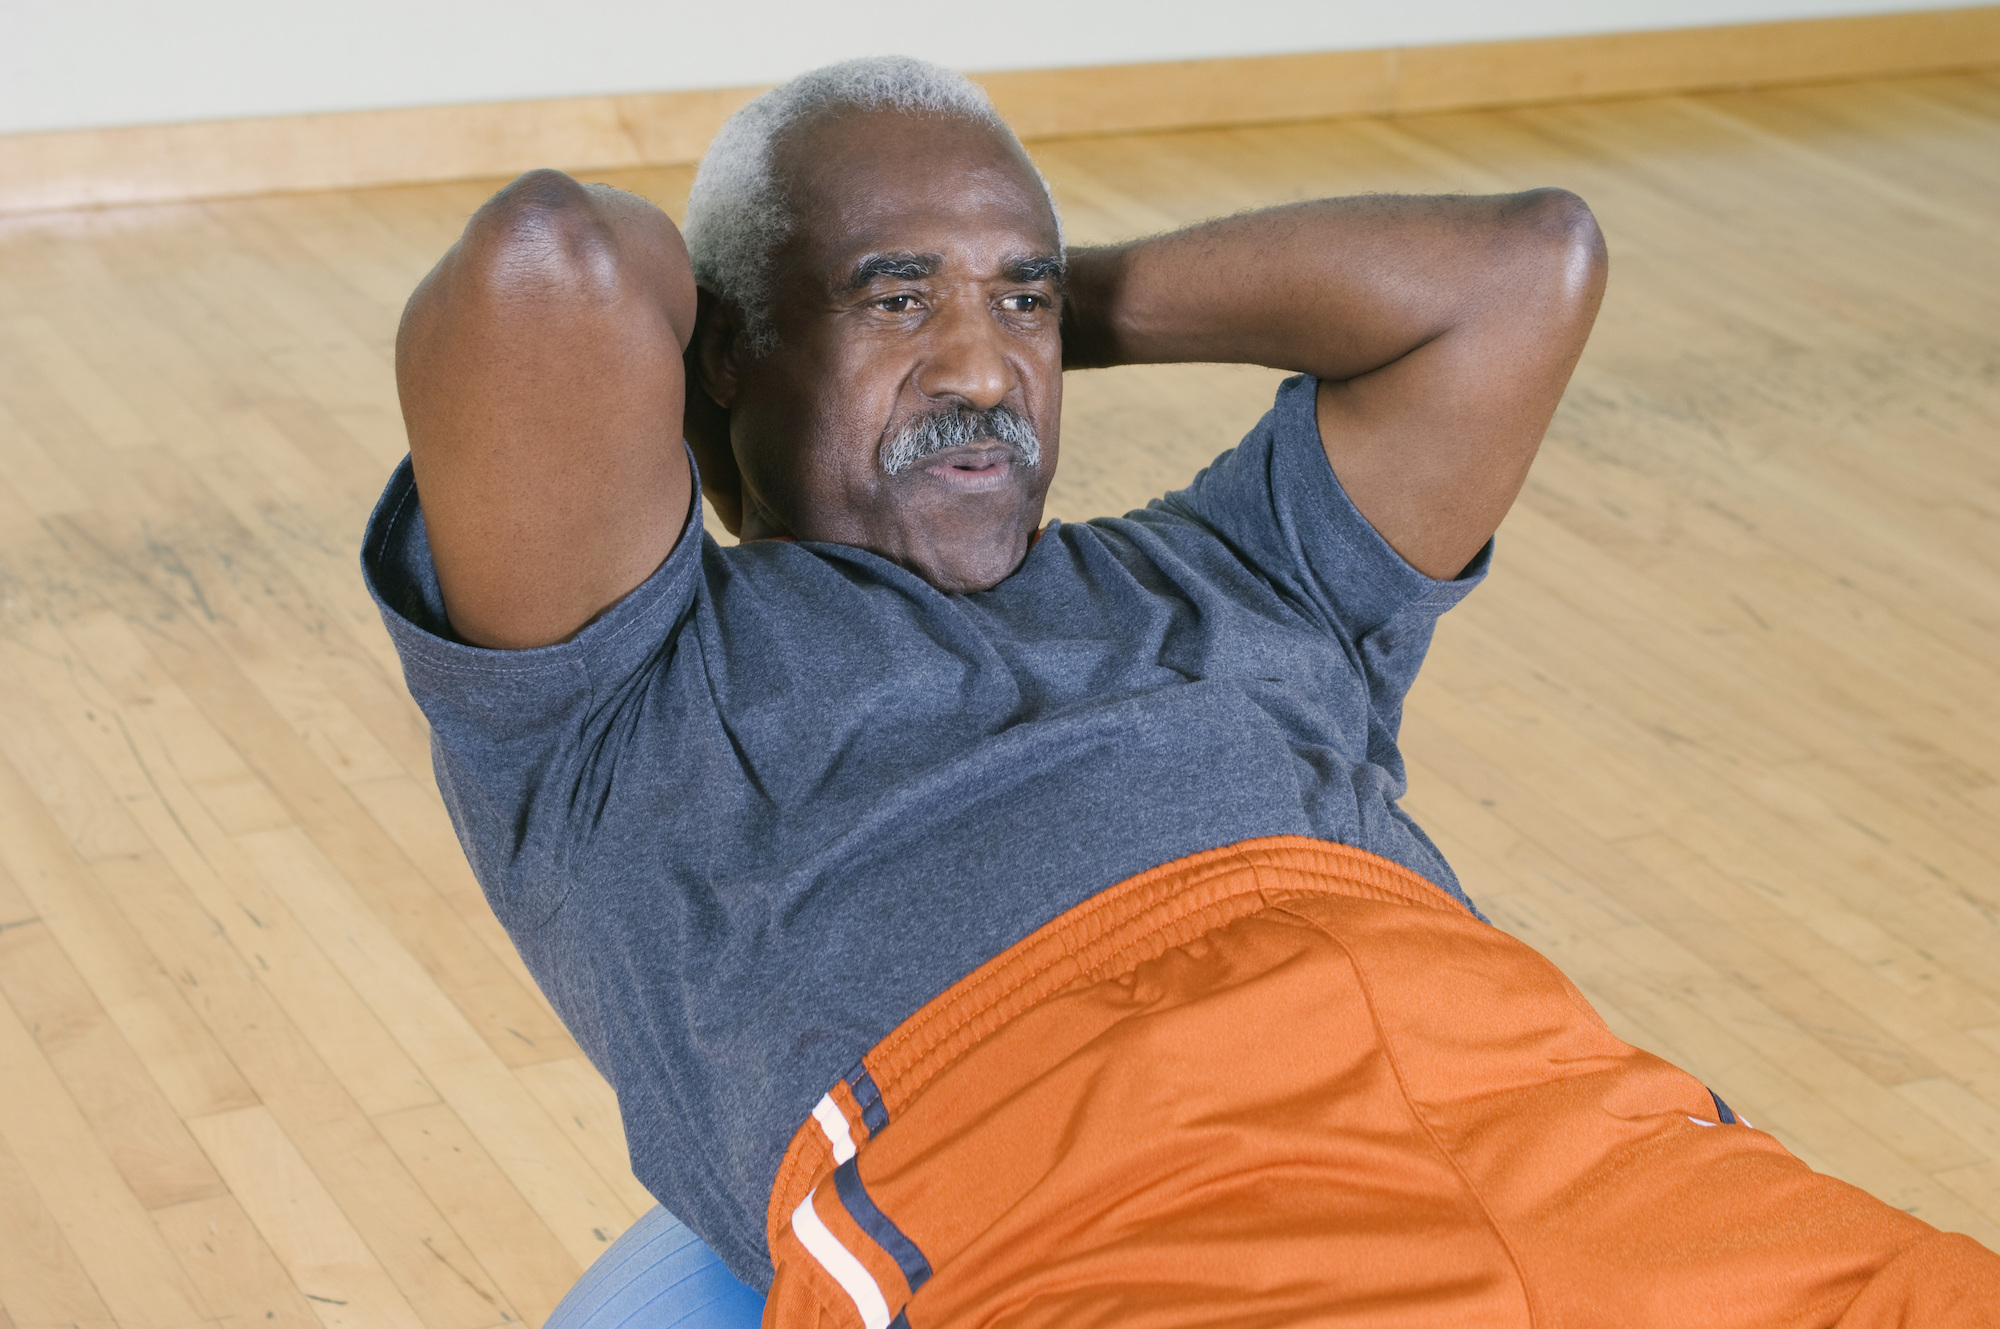 african american man doing situps on a pilates ball at home